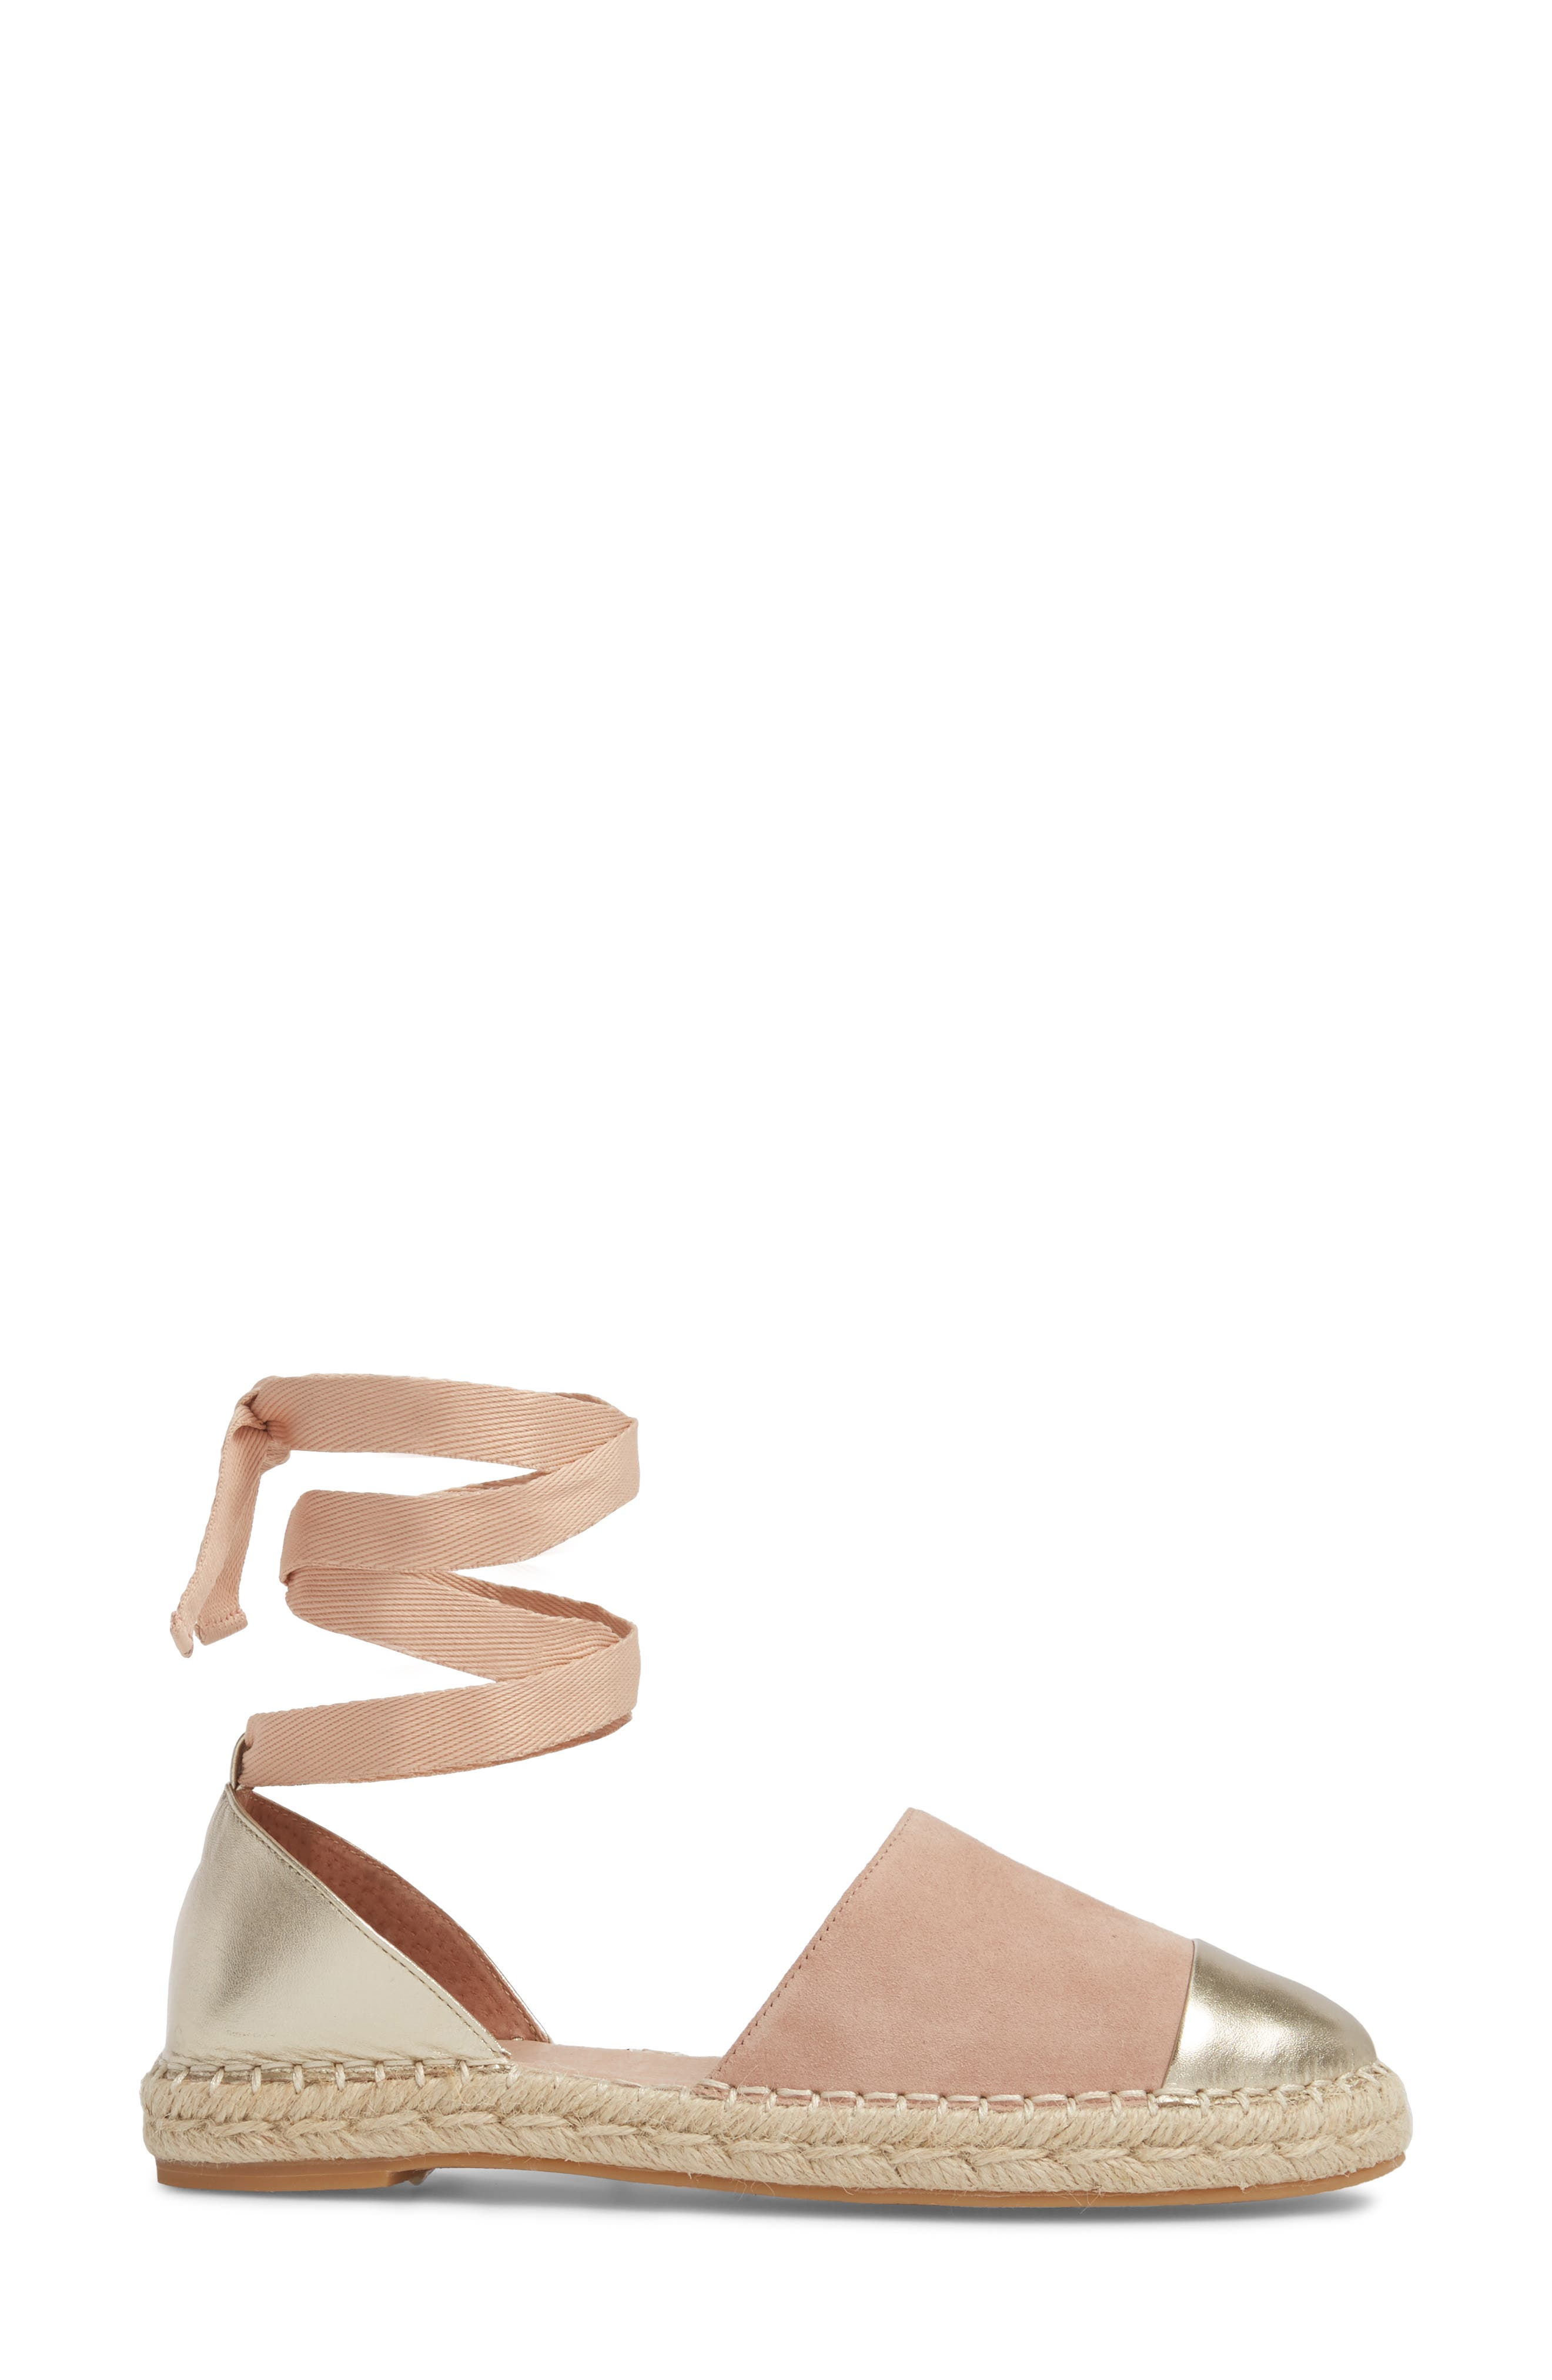 Cain Ankle-Tie Sandal,                             Alternate thumbnail 3, color,                             Nude Suede/ Gold Leather